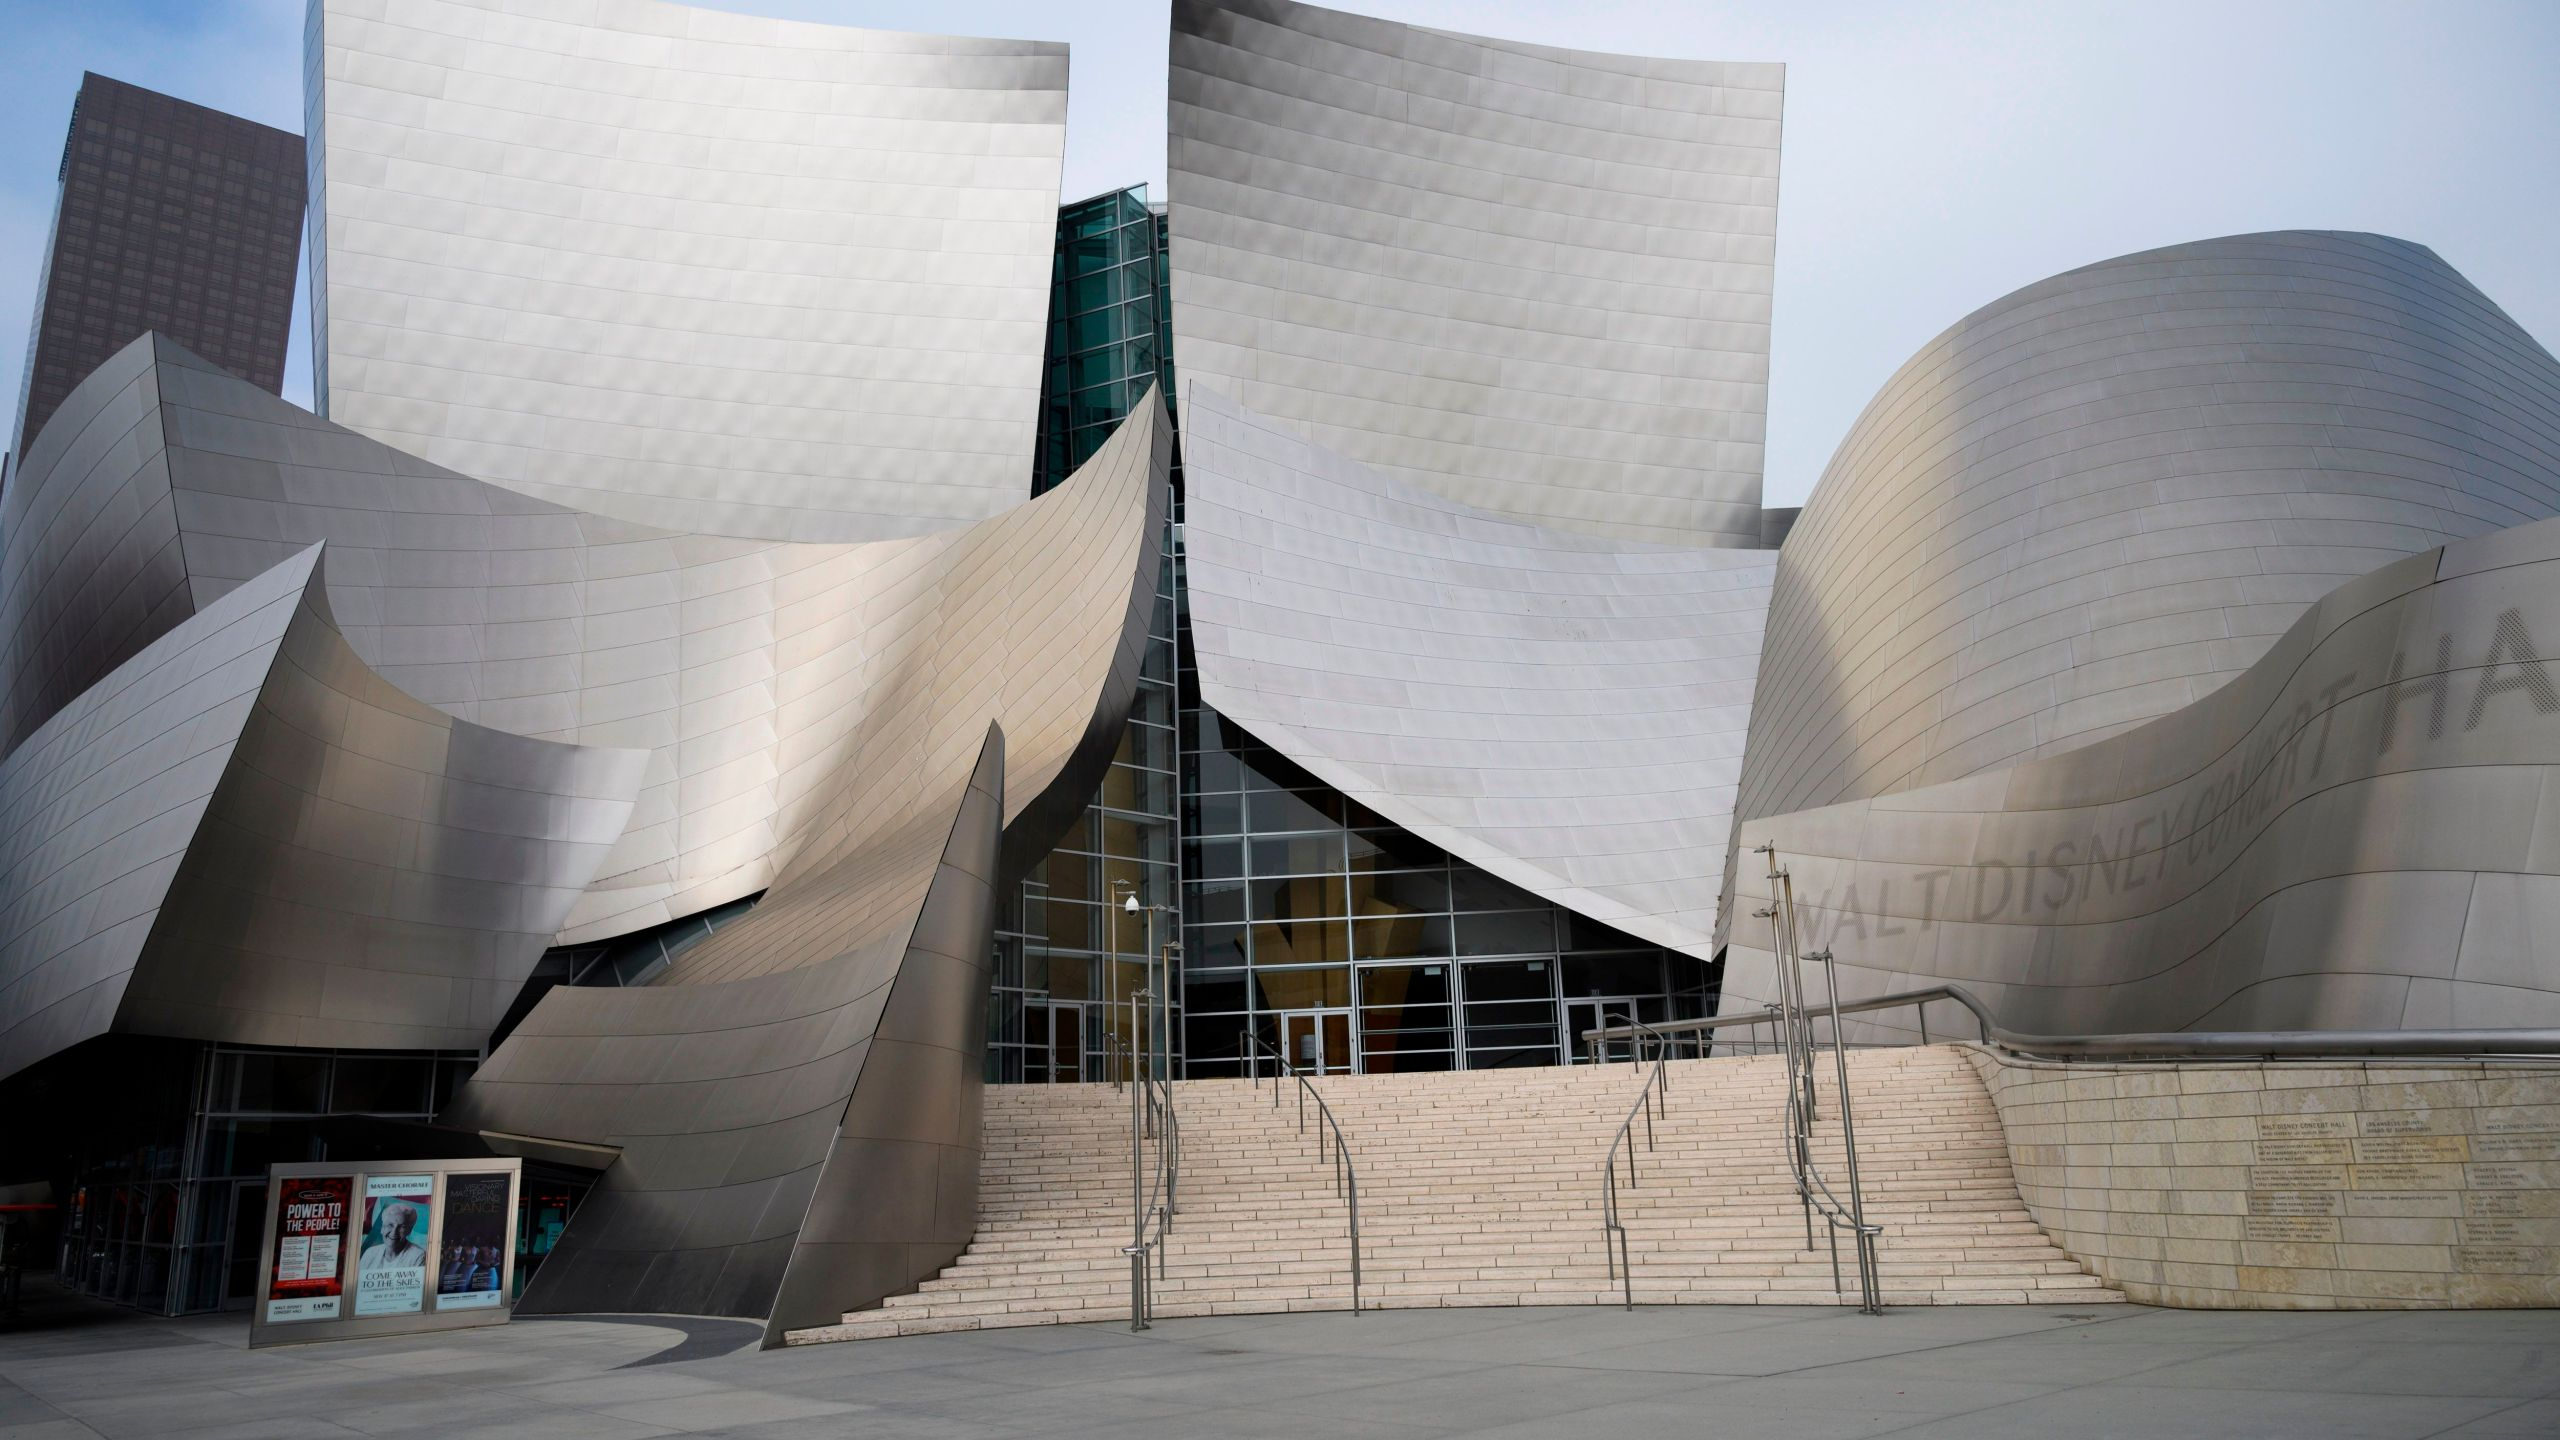 The Walt Disney Concert Hall in downtown Los Angeles is seen on on April 30, 2020. (ROBYN BECK/AFP via Getty Images)